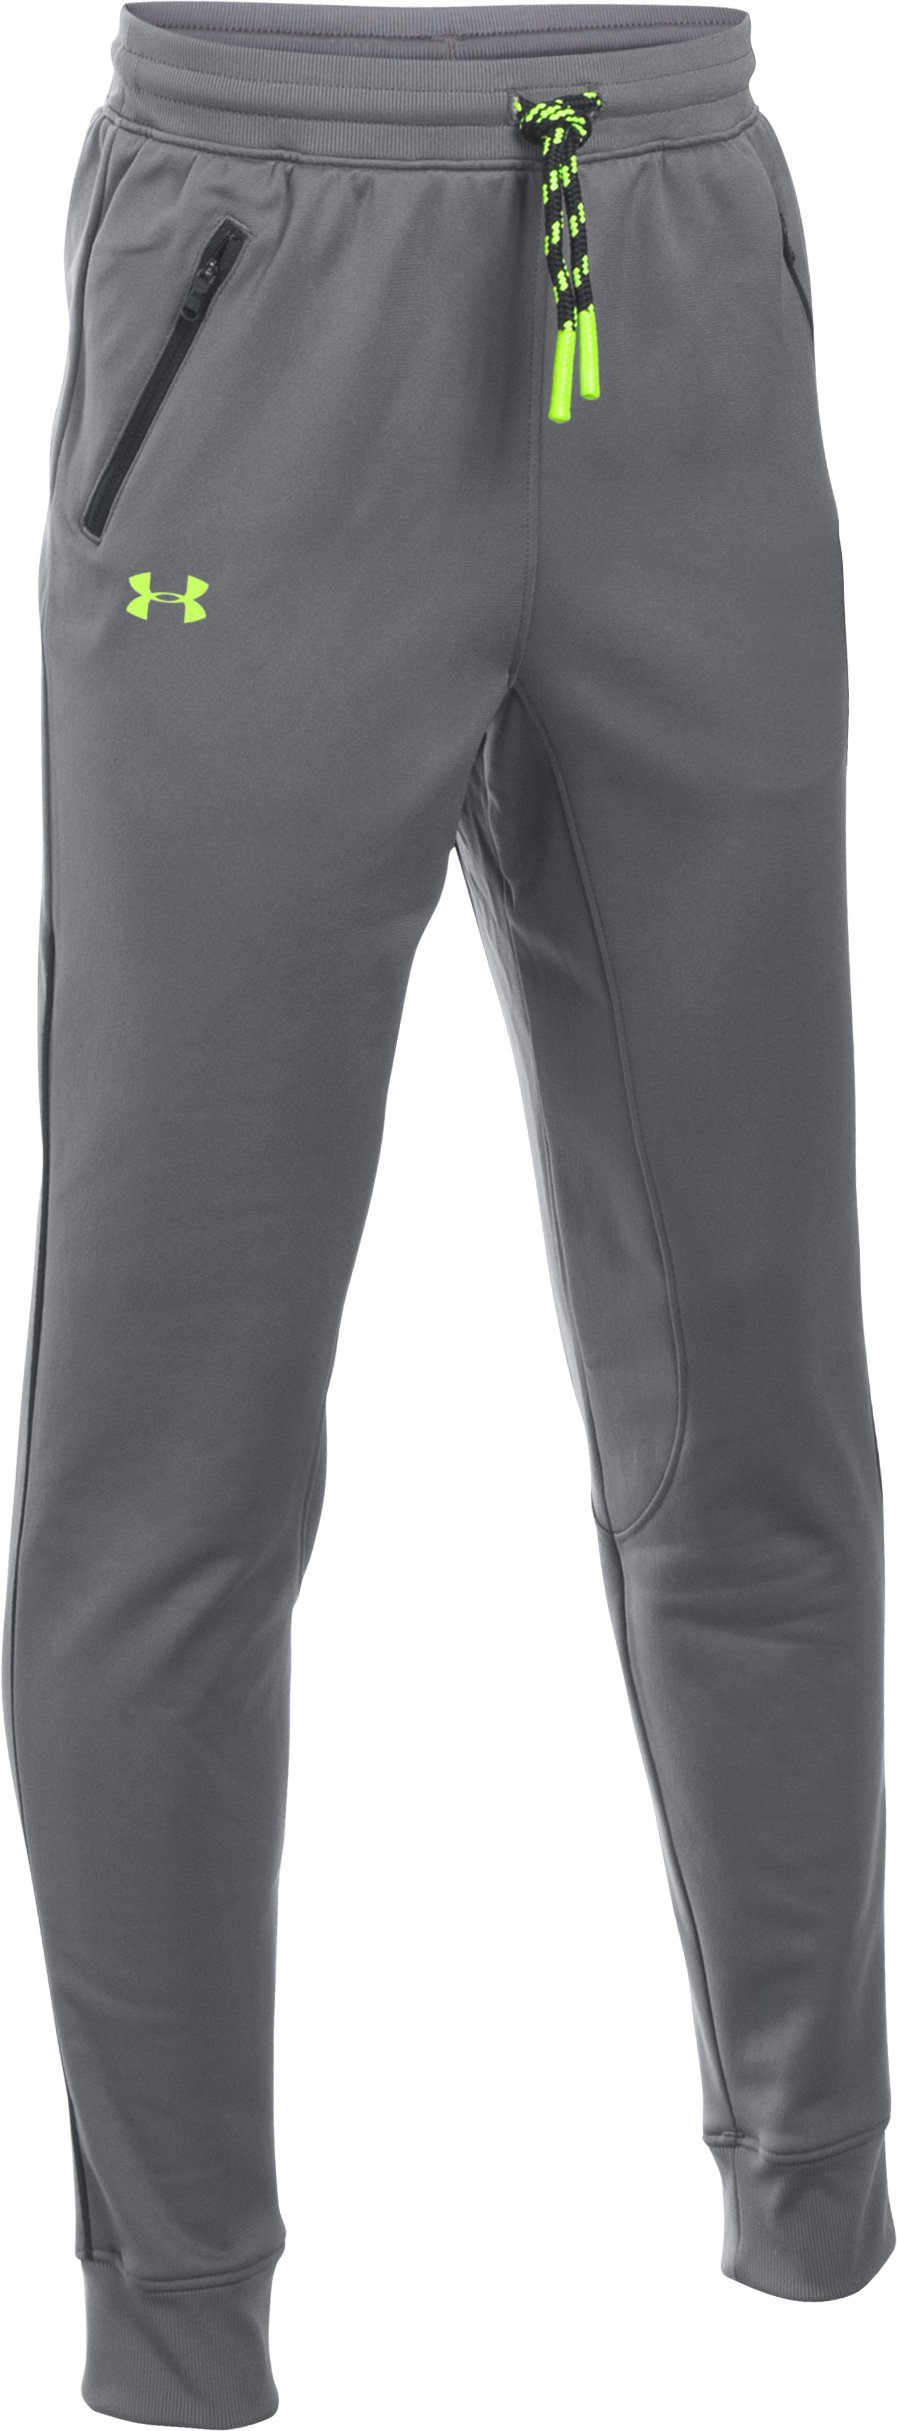 Boys' UA Pennant Tapered Pants 5 Colors $23.99 - $29.99